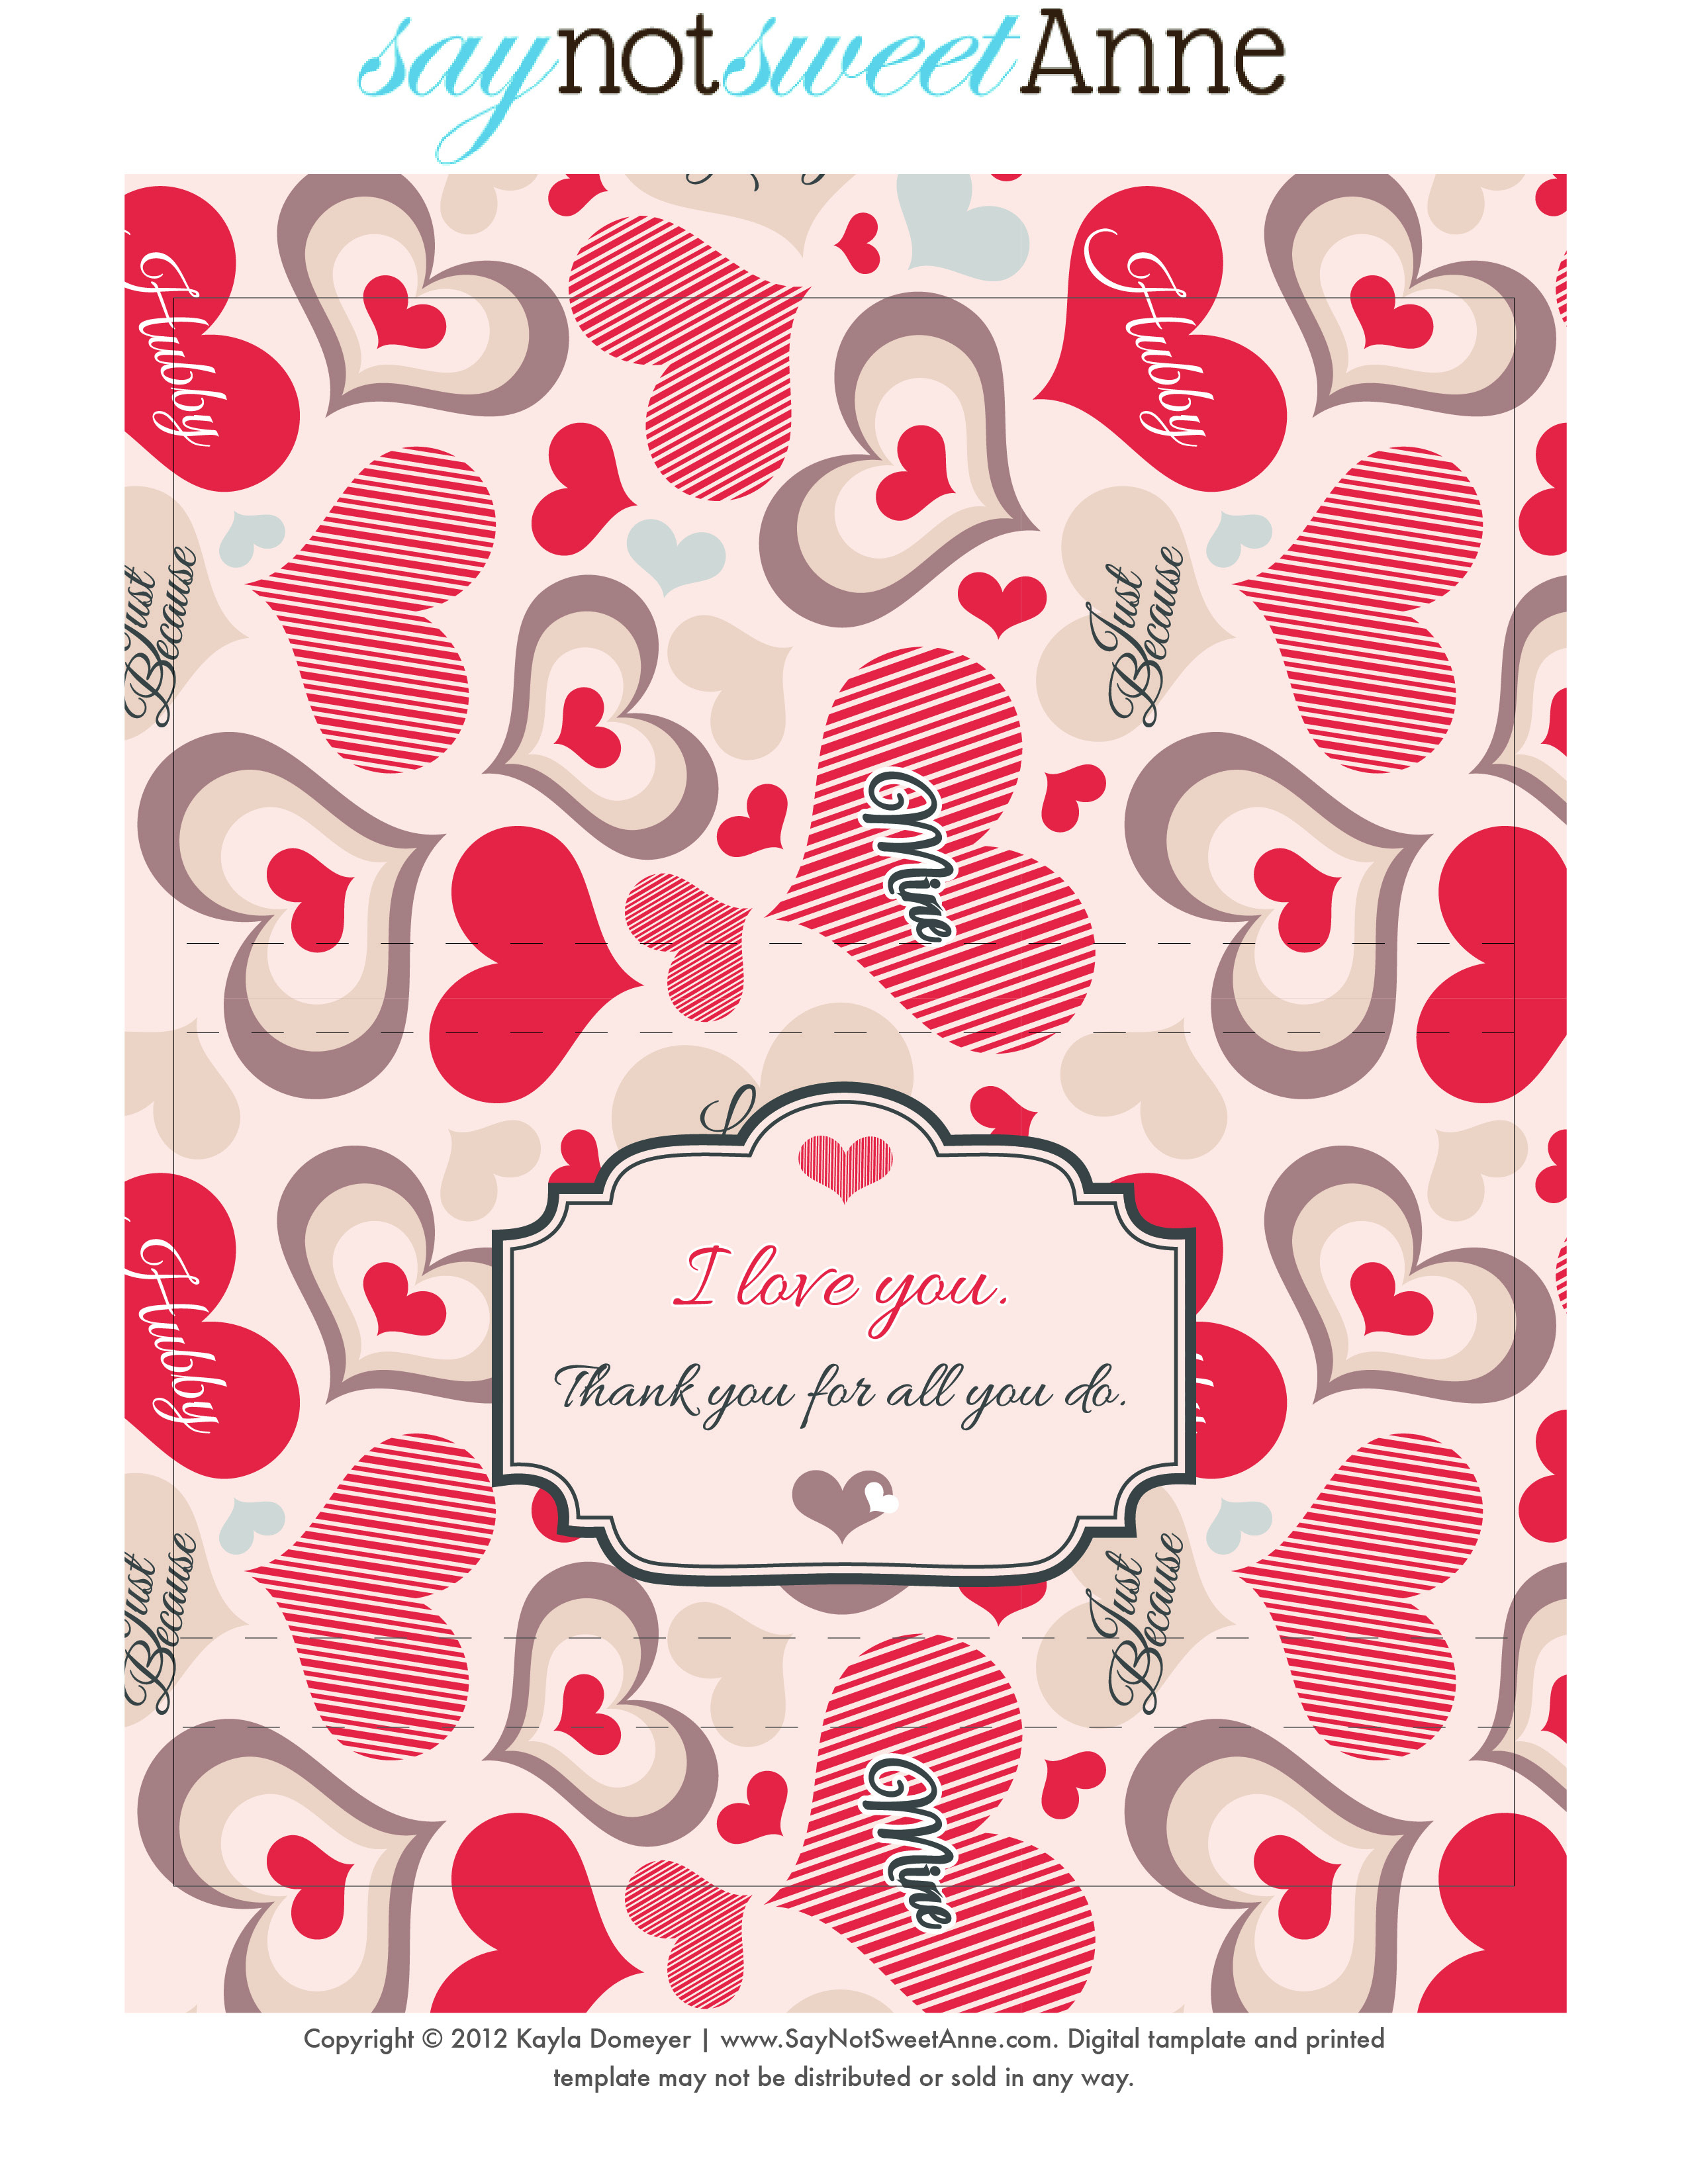 Just Because Candy [Free Printable] - Sweet Anne Designs - Free Printable Candy Bar Wrappers